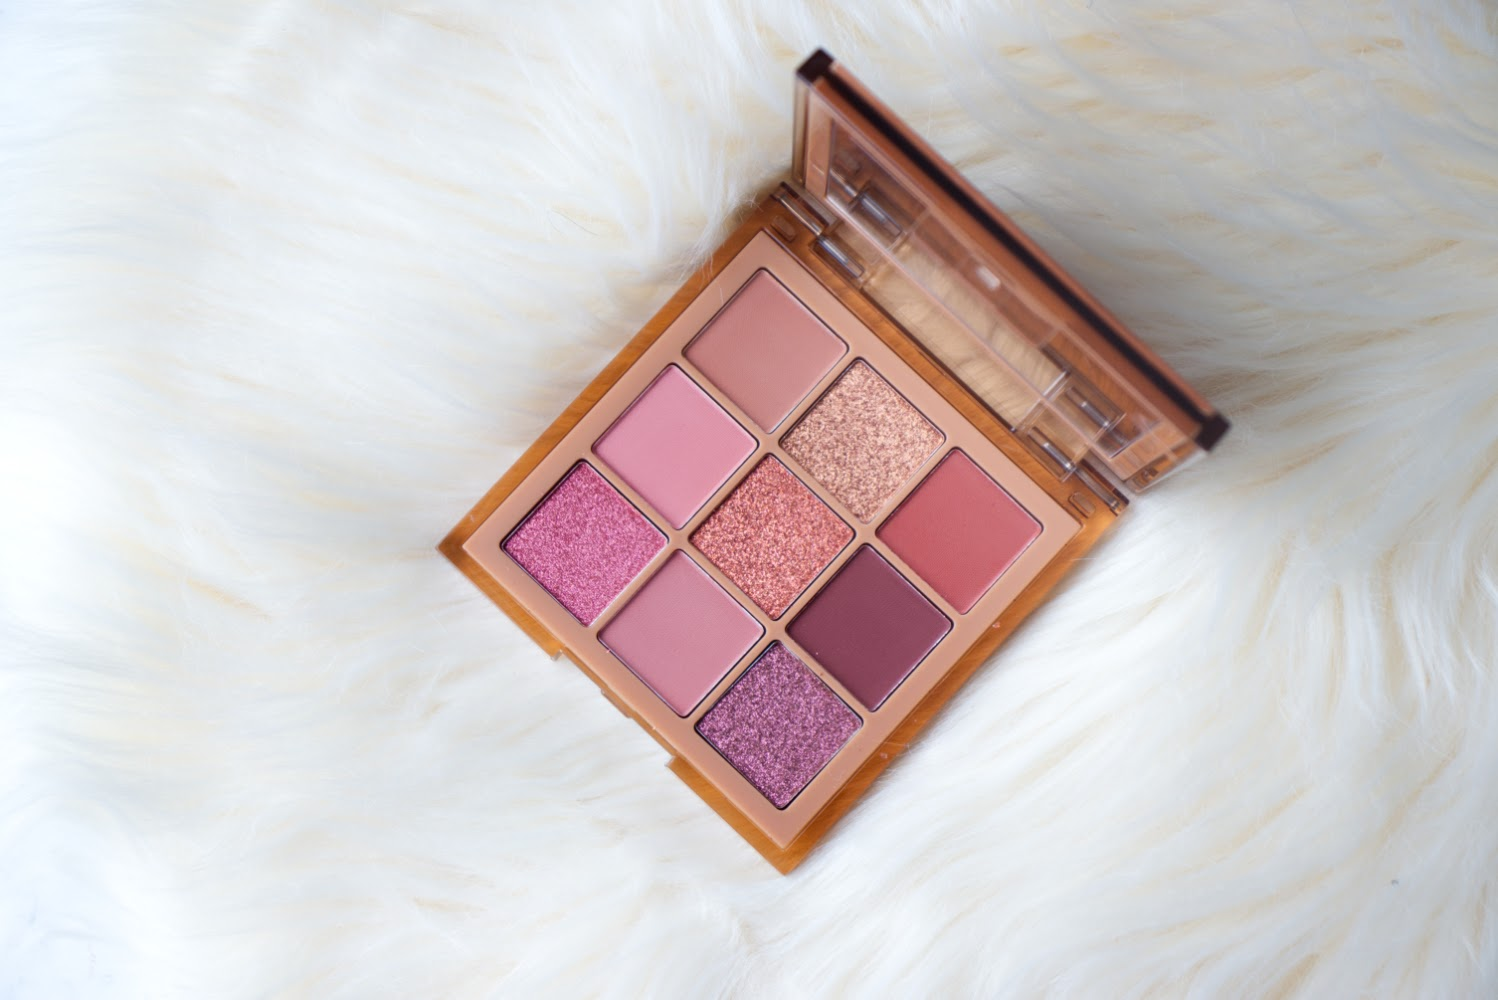 Huda Beauty Nude Medium Obsessions Eyeshadow Palette